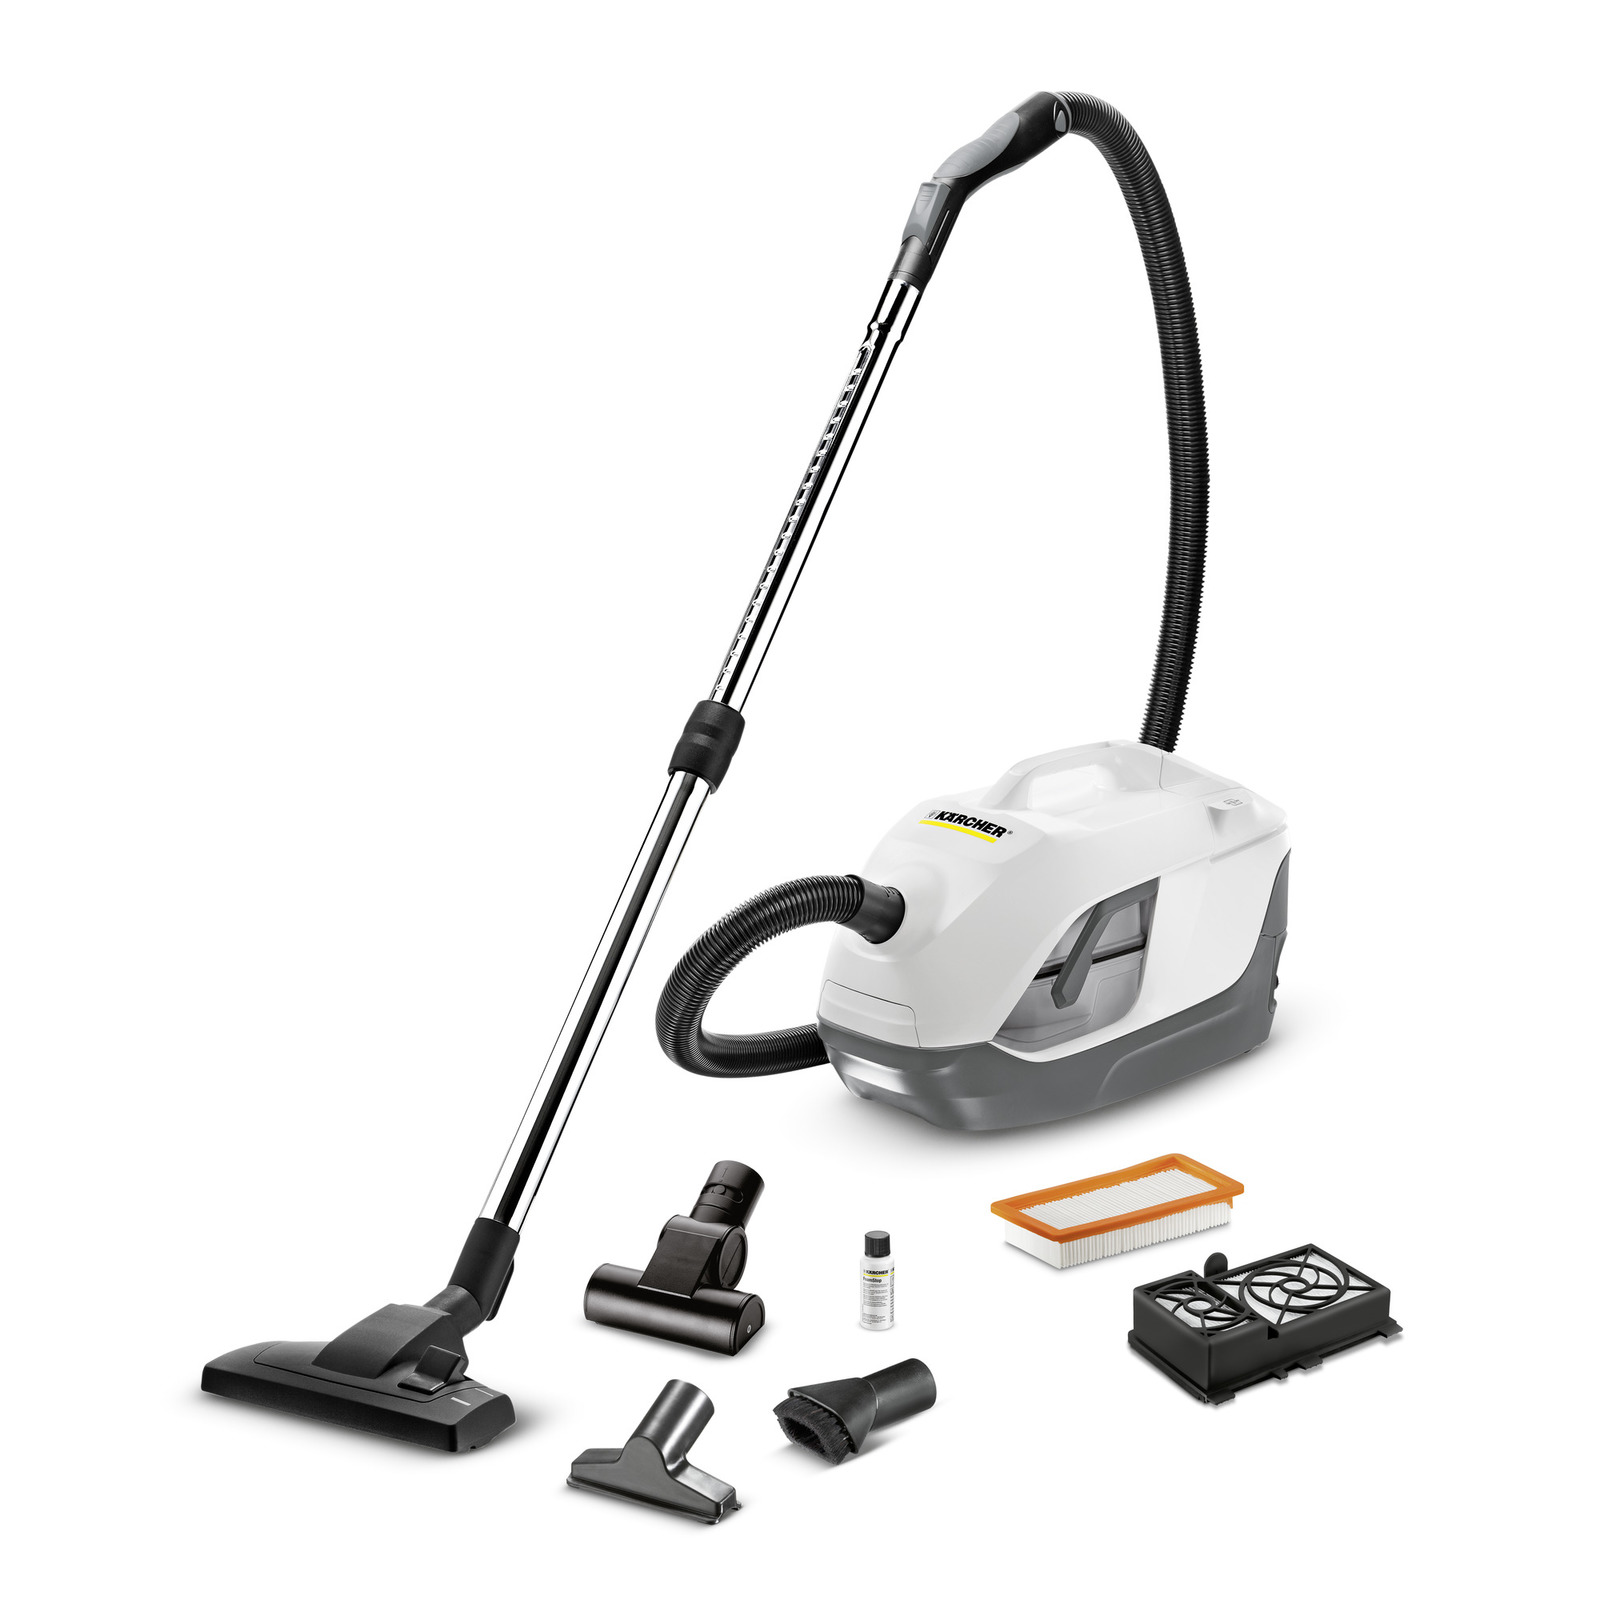 We choose a vacuum cleaner Samsung with an aquafilter